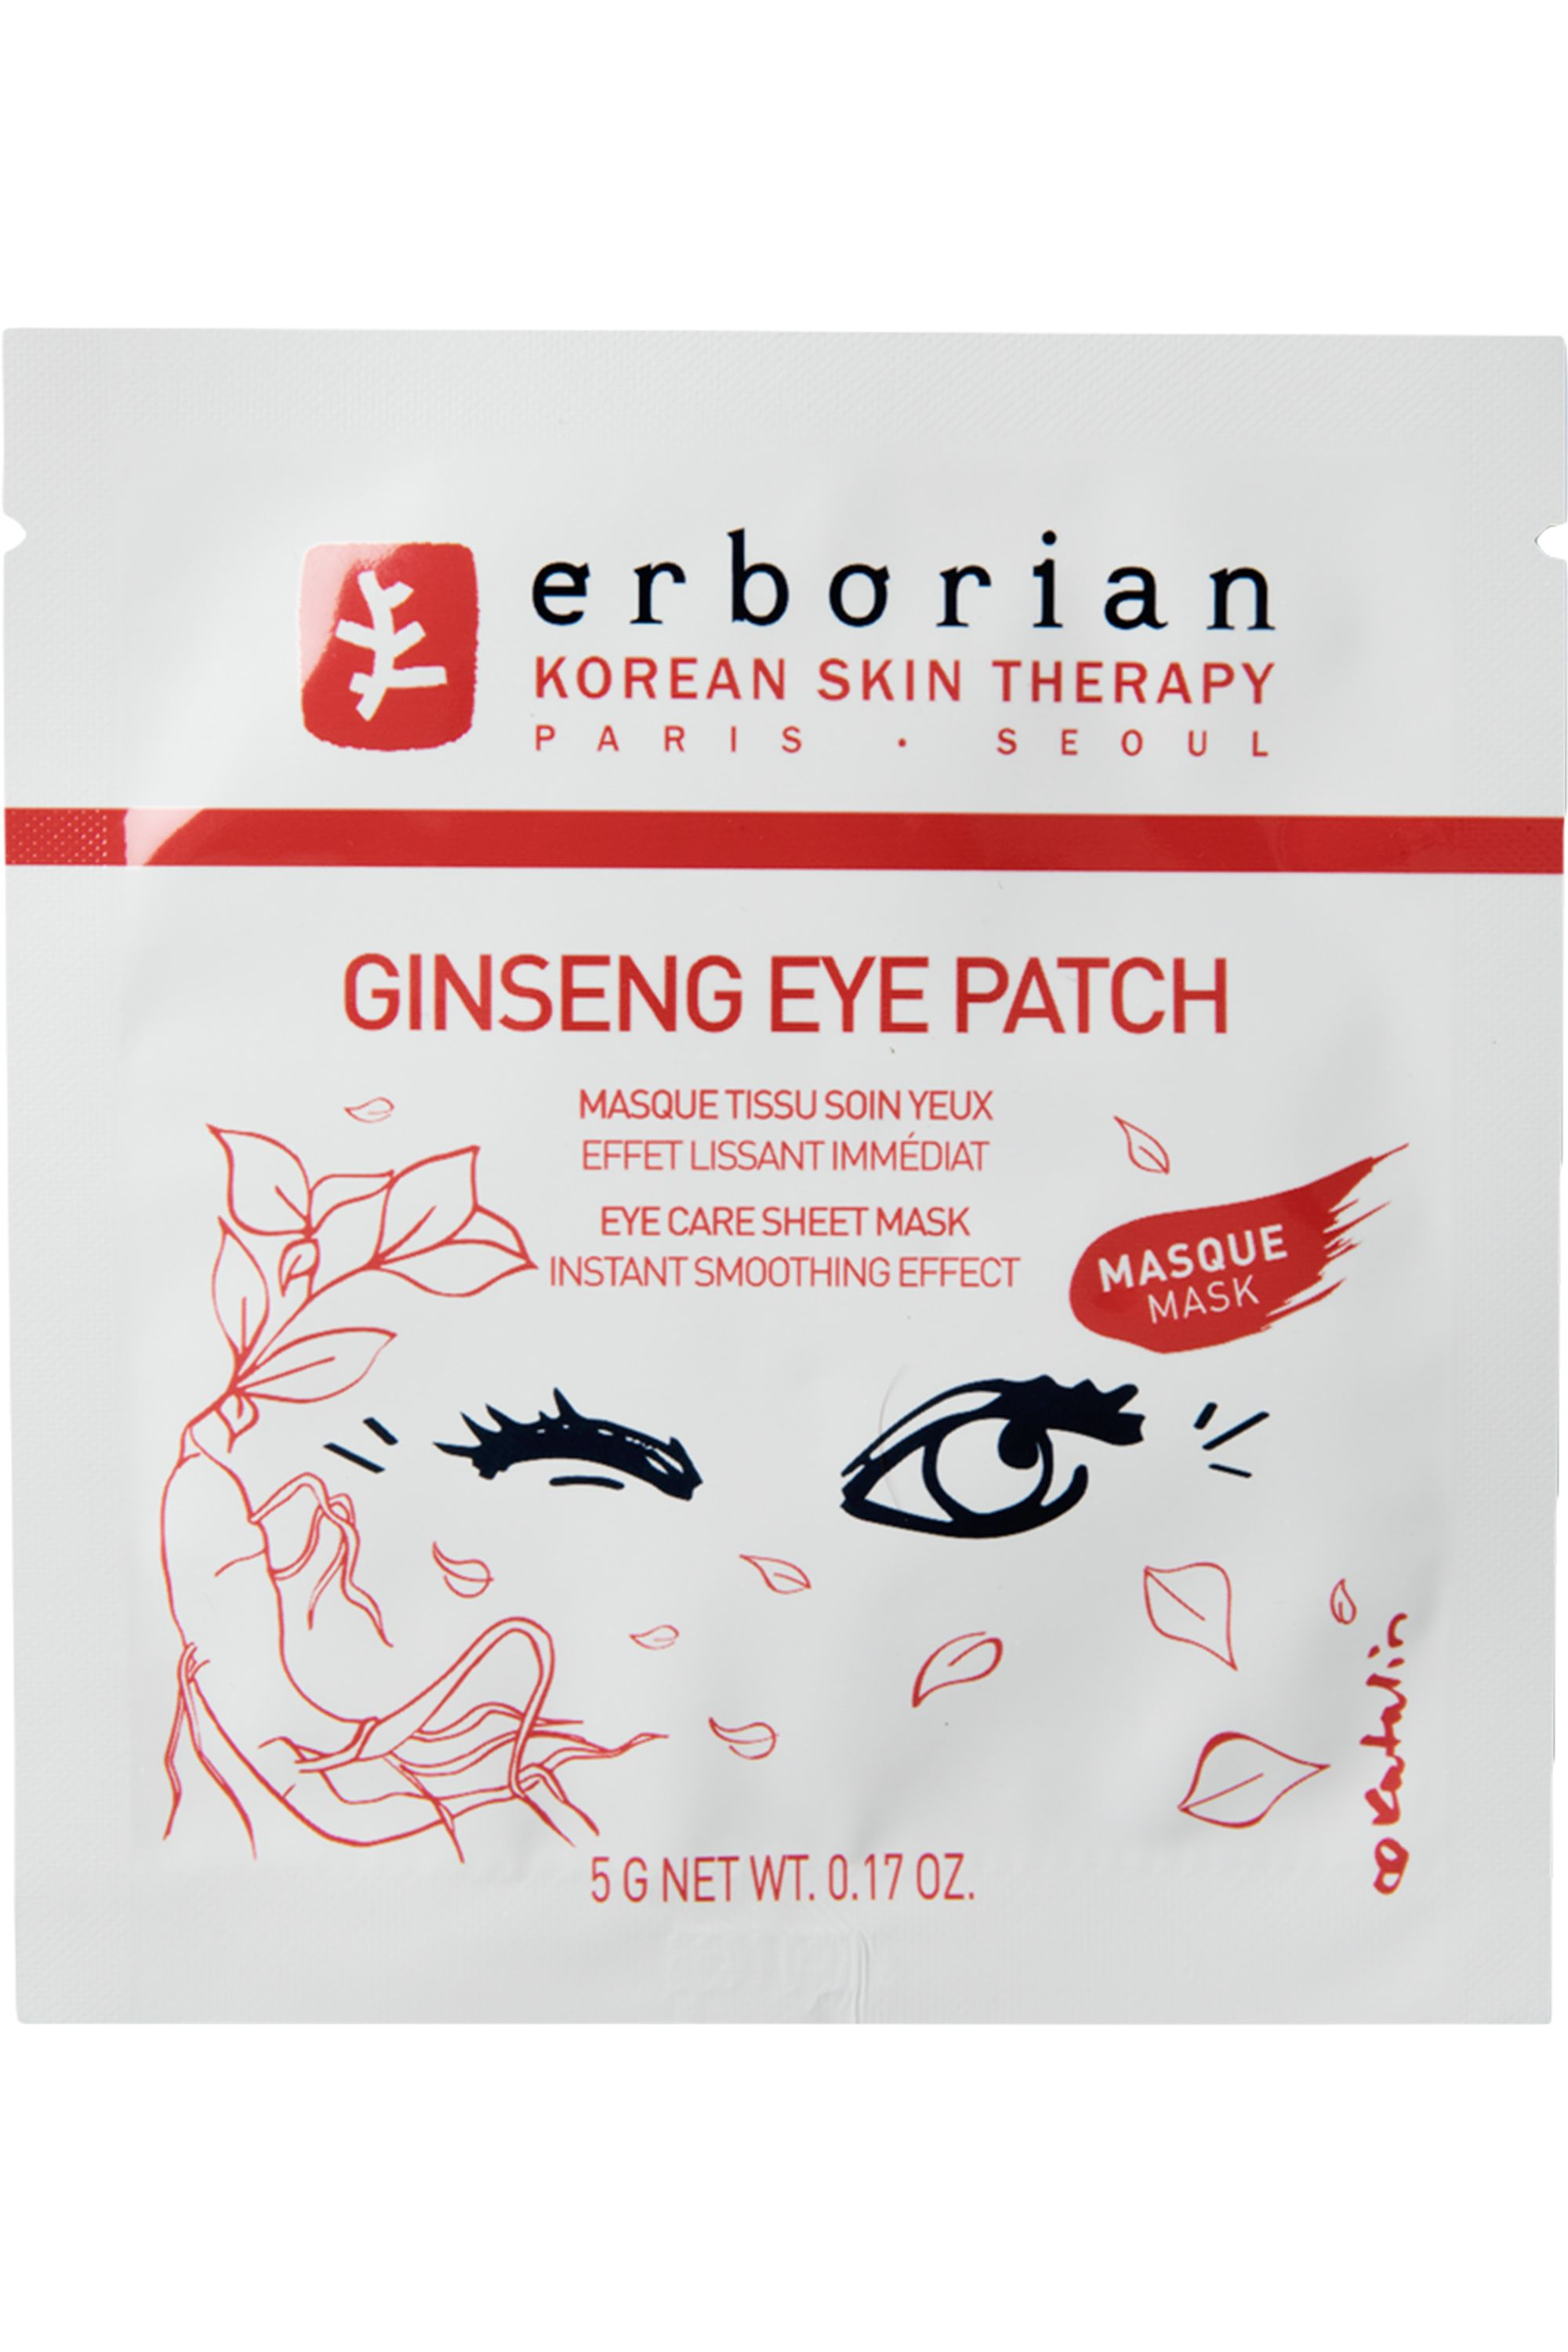 Blissim : Erborian - Masque yeux Ginseng Eye Patch - Masque yeux Ginseng Eye Patch